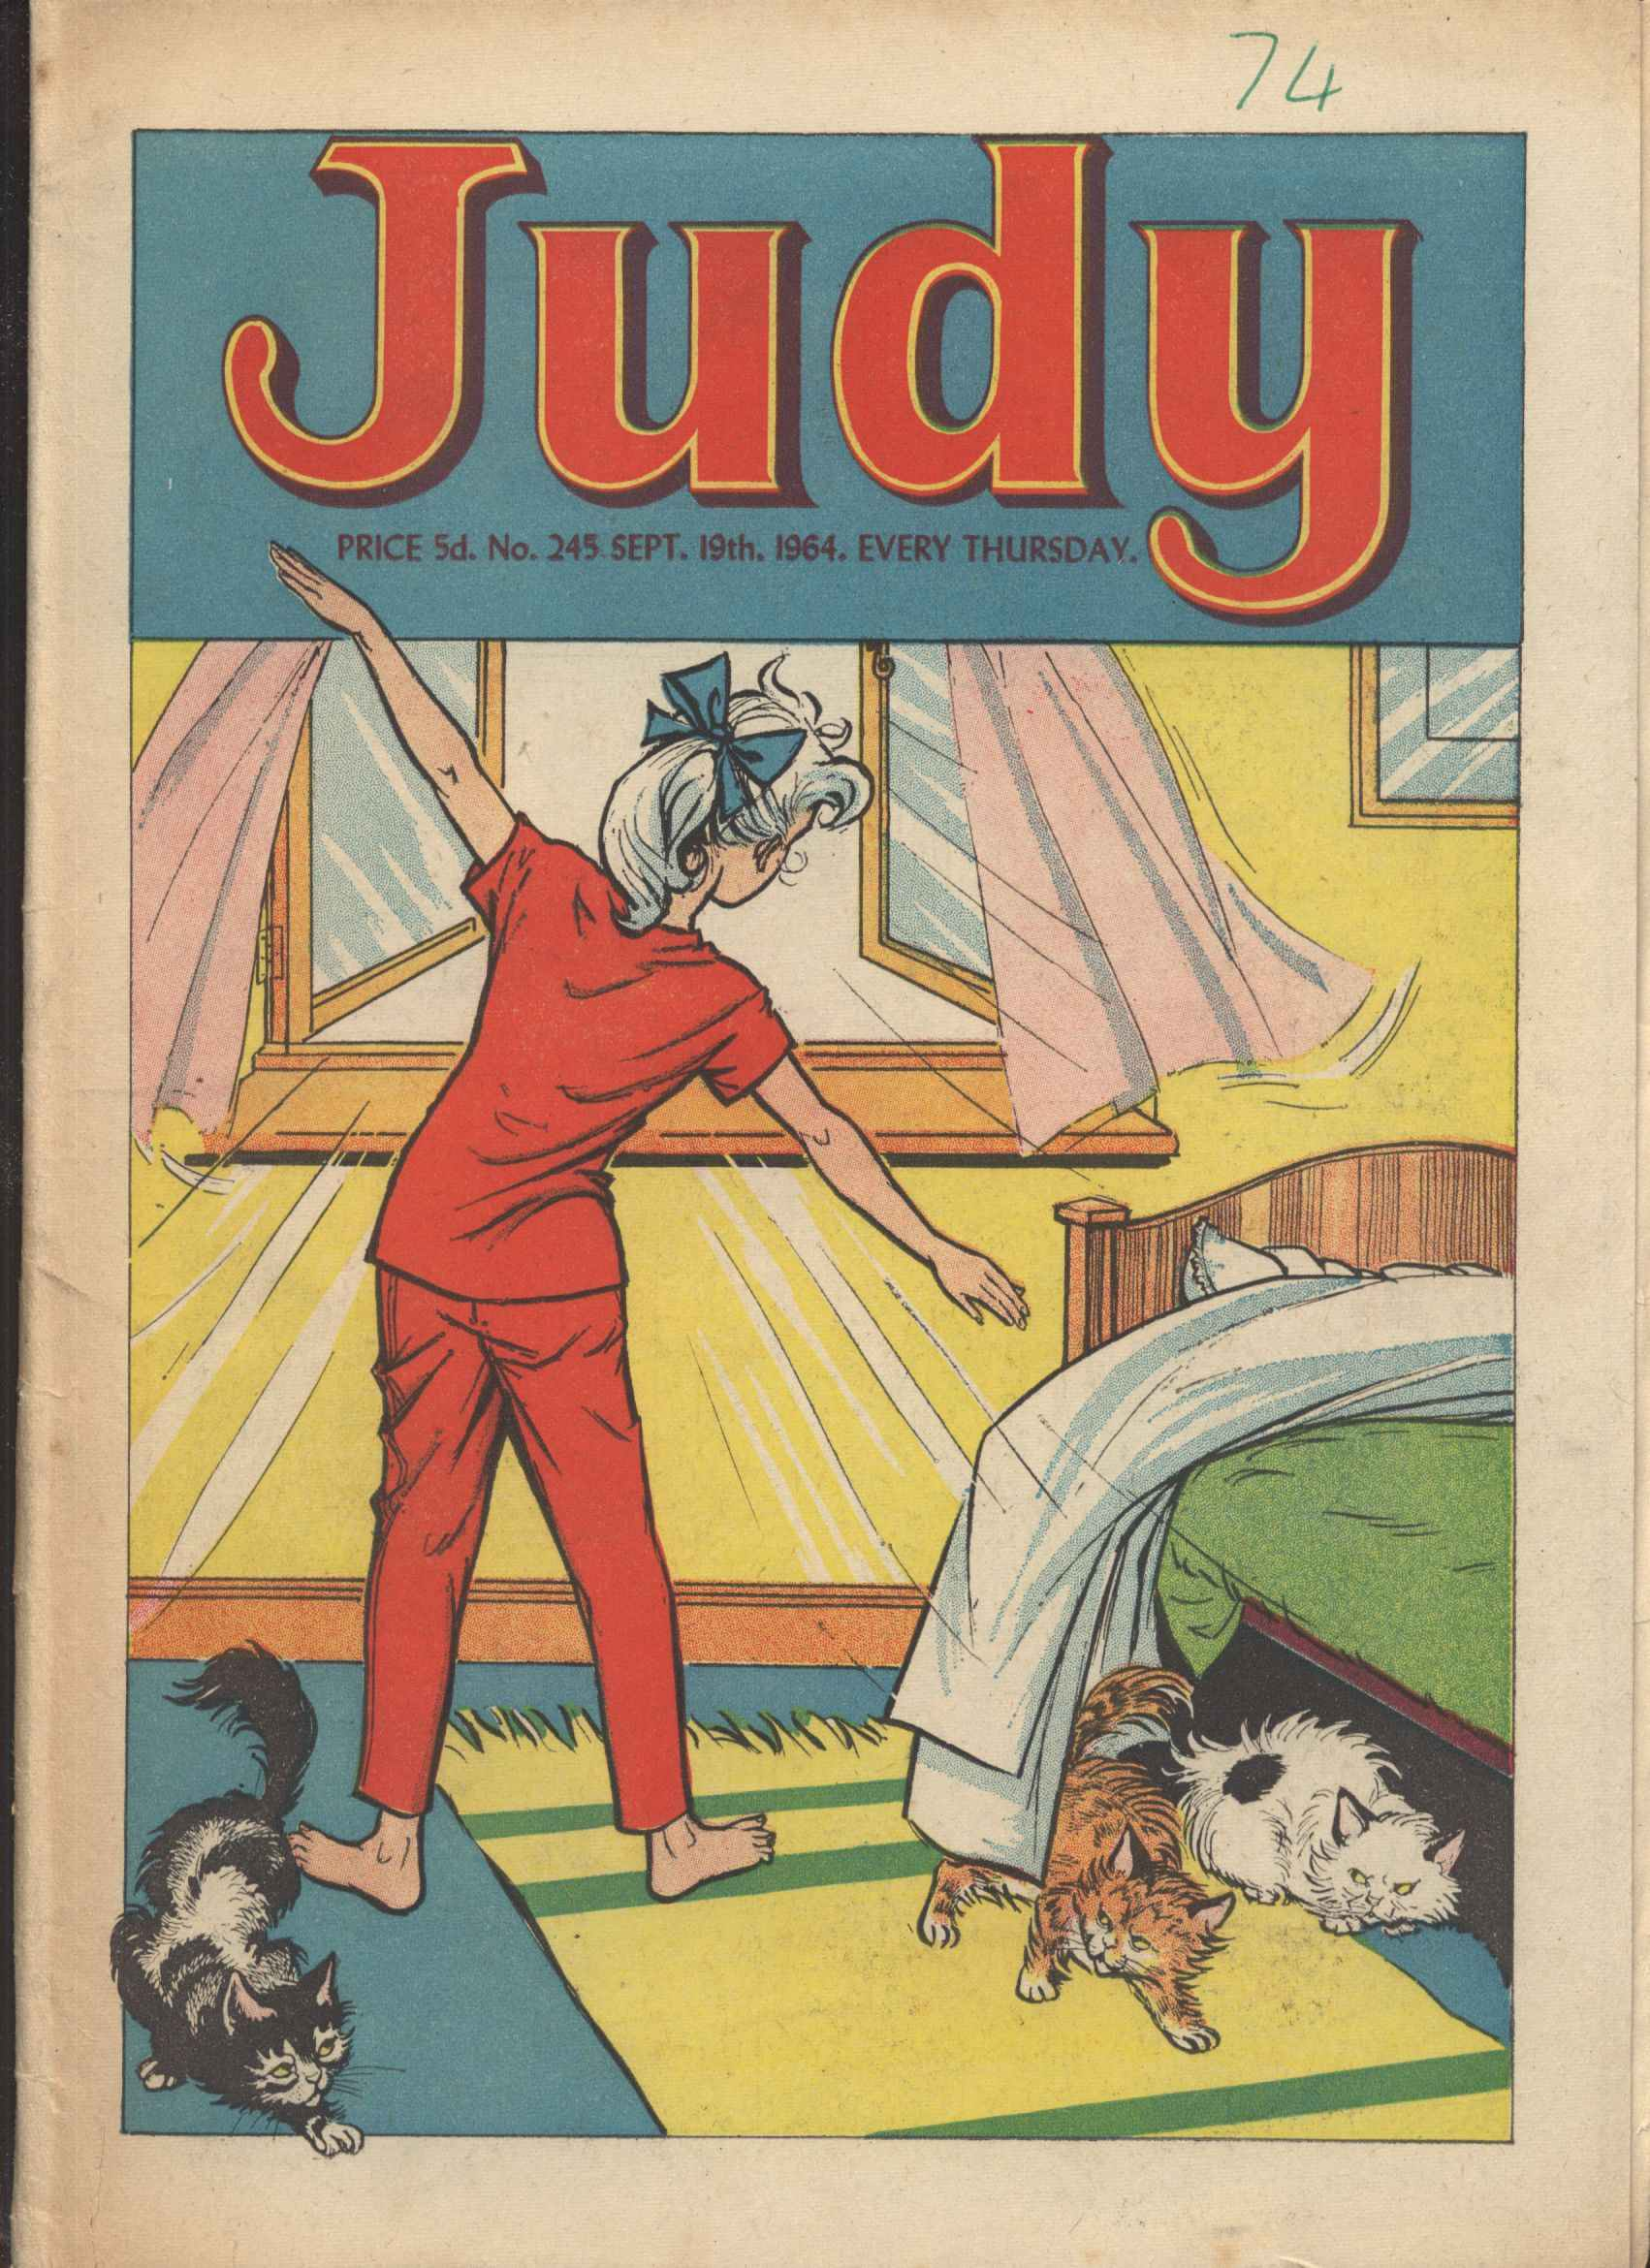 Read online Judy comic -  Issue #245 - 1